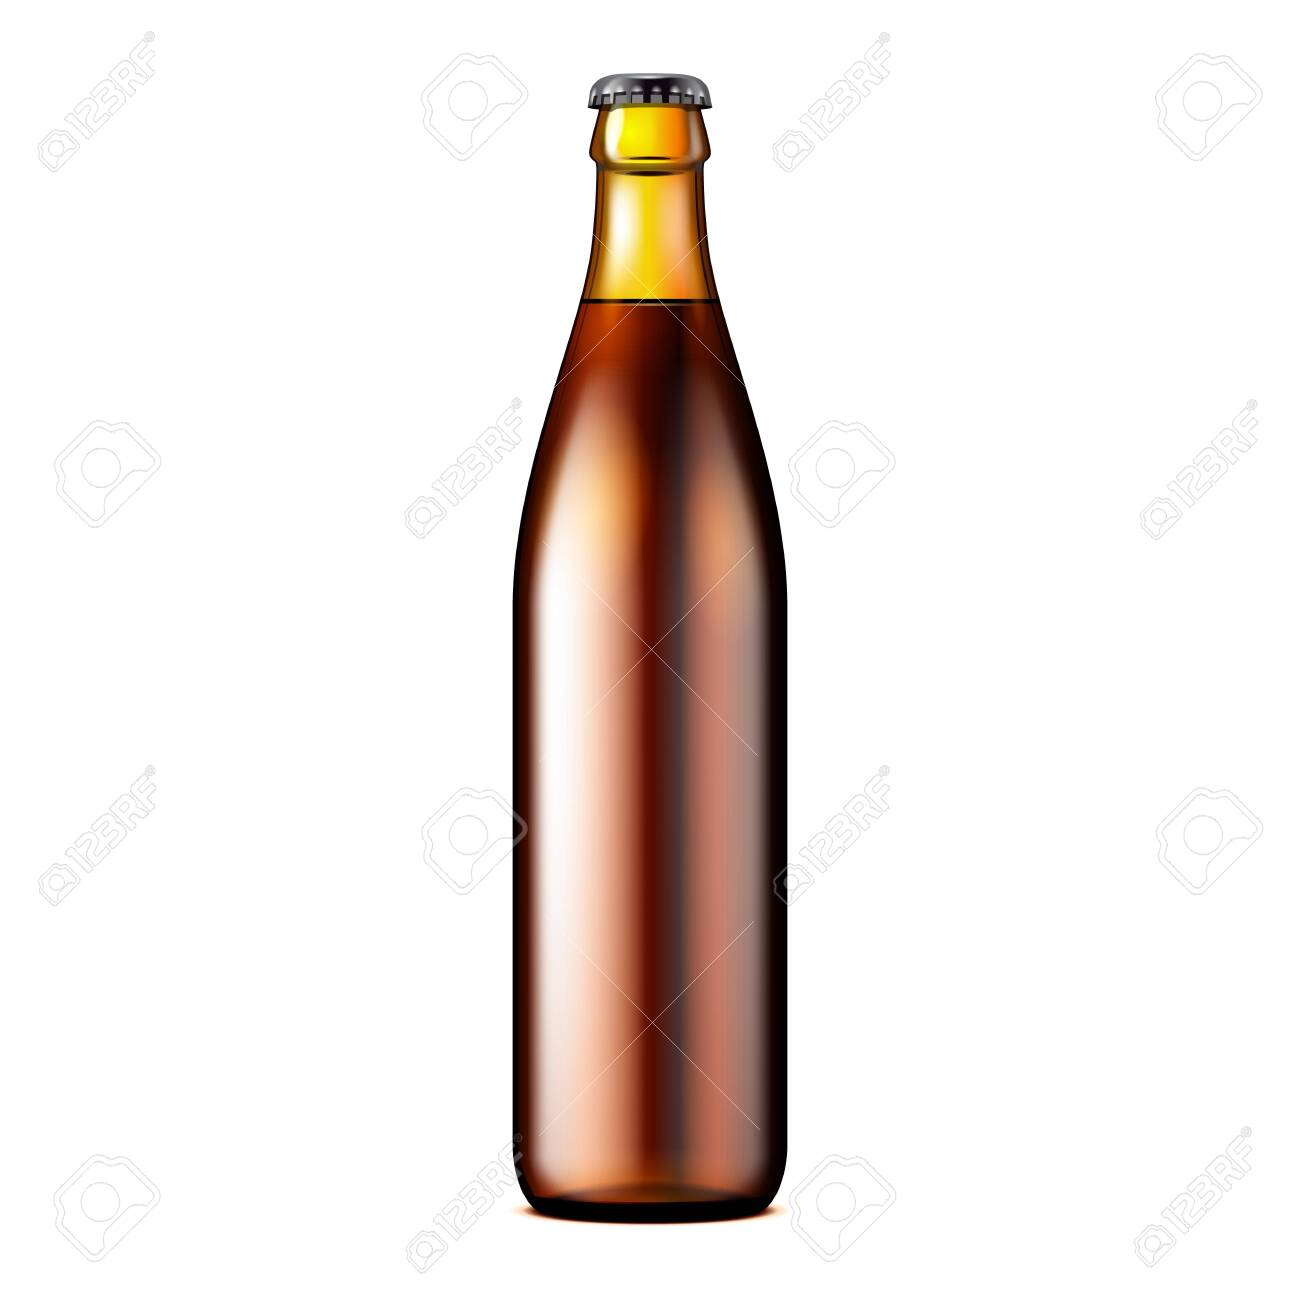 Glass Dark Brown Beer, Ale, Cider Bottle. Carbonated Soft Drink. Mock Up Template. Illustration Isolated On White Background. Ready For Your Design. Product Packaging. Vector EPS10 - 122417118